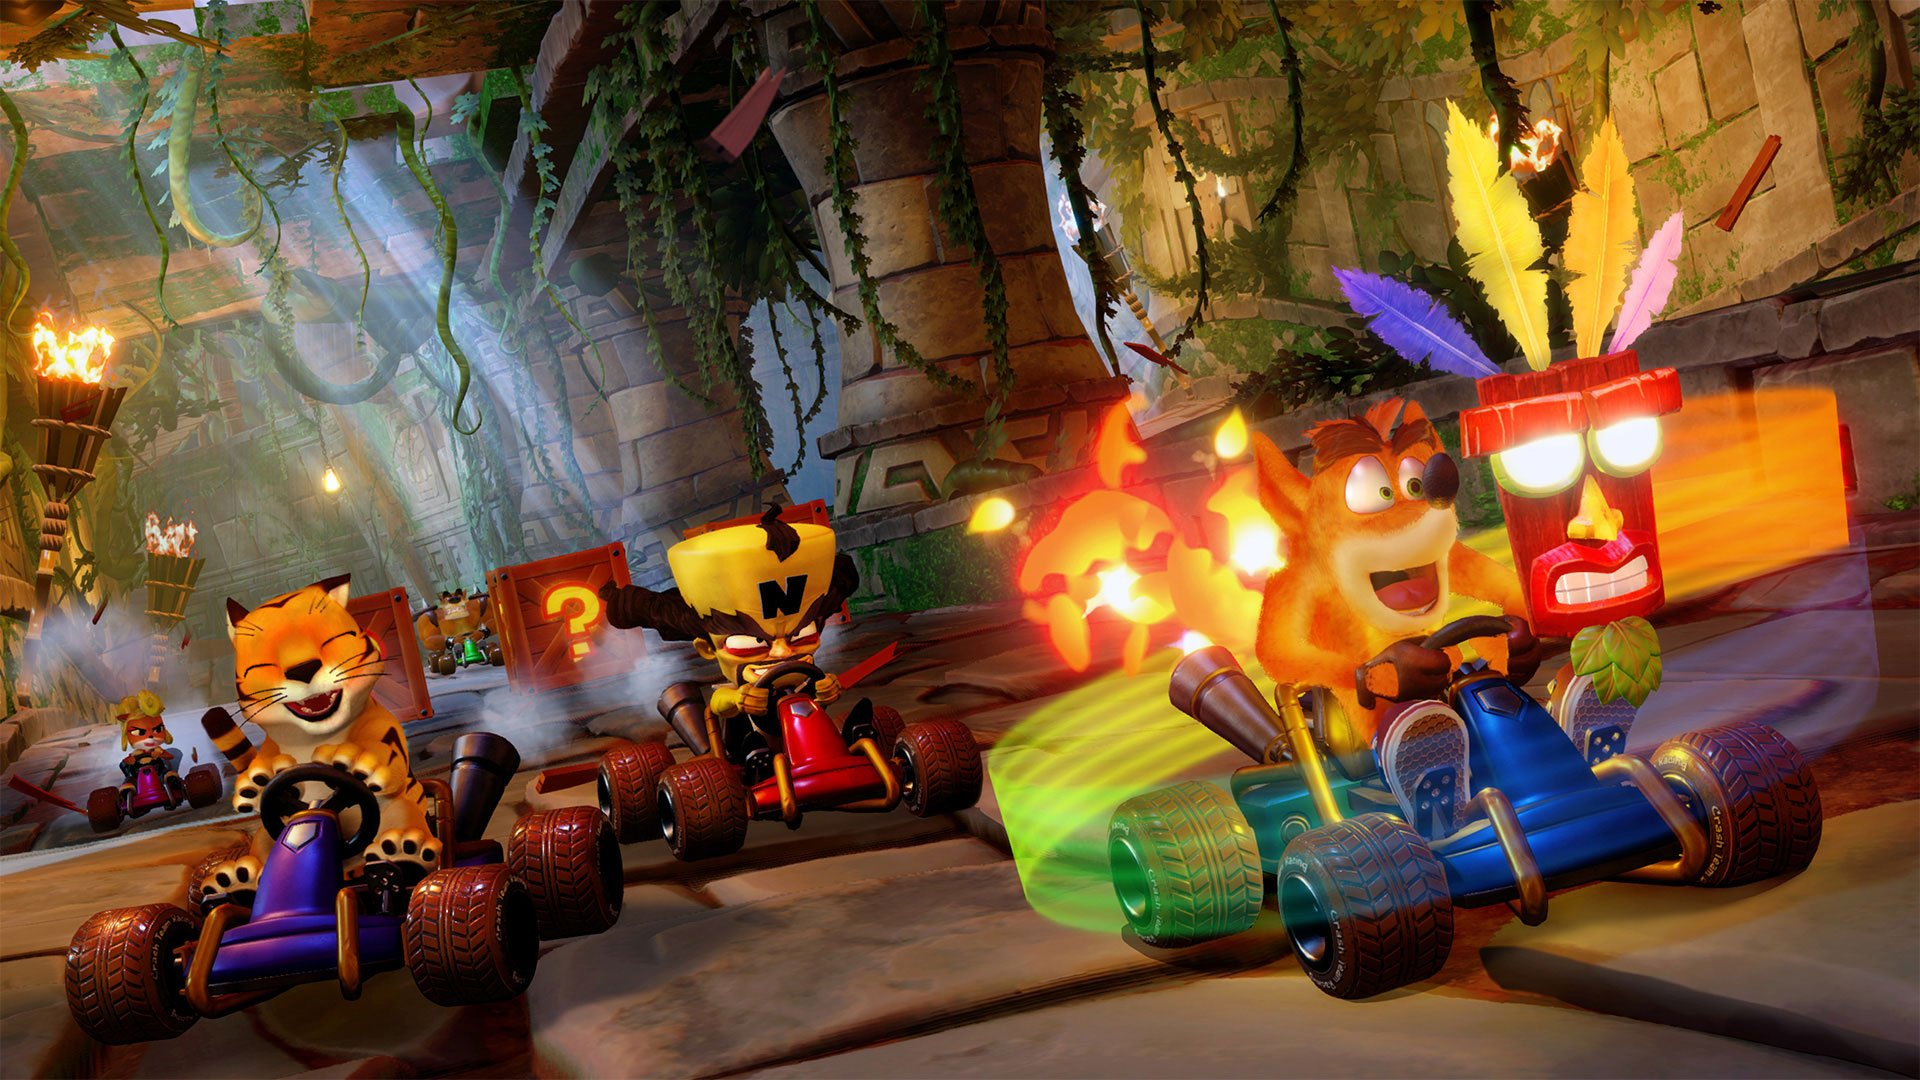 The key to getting 101% completion in Crash Team Racing Nitro-Fueled is to earn 100% completion, then do the Relic Challenges a second time while earning a Gold Relic in each.